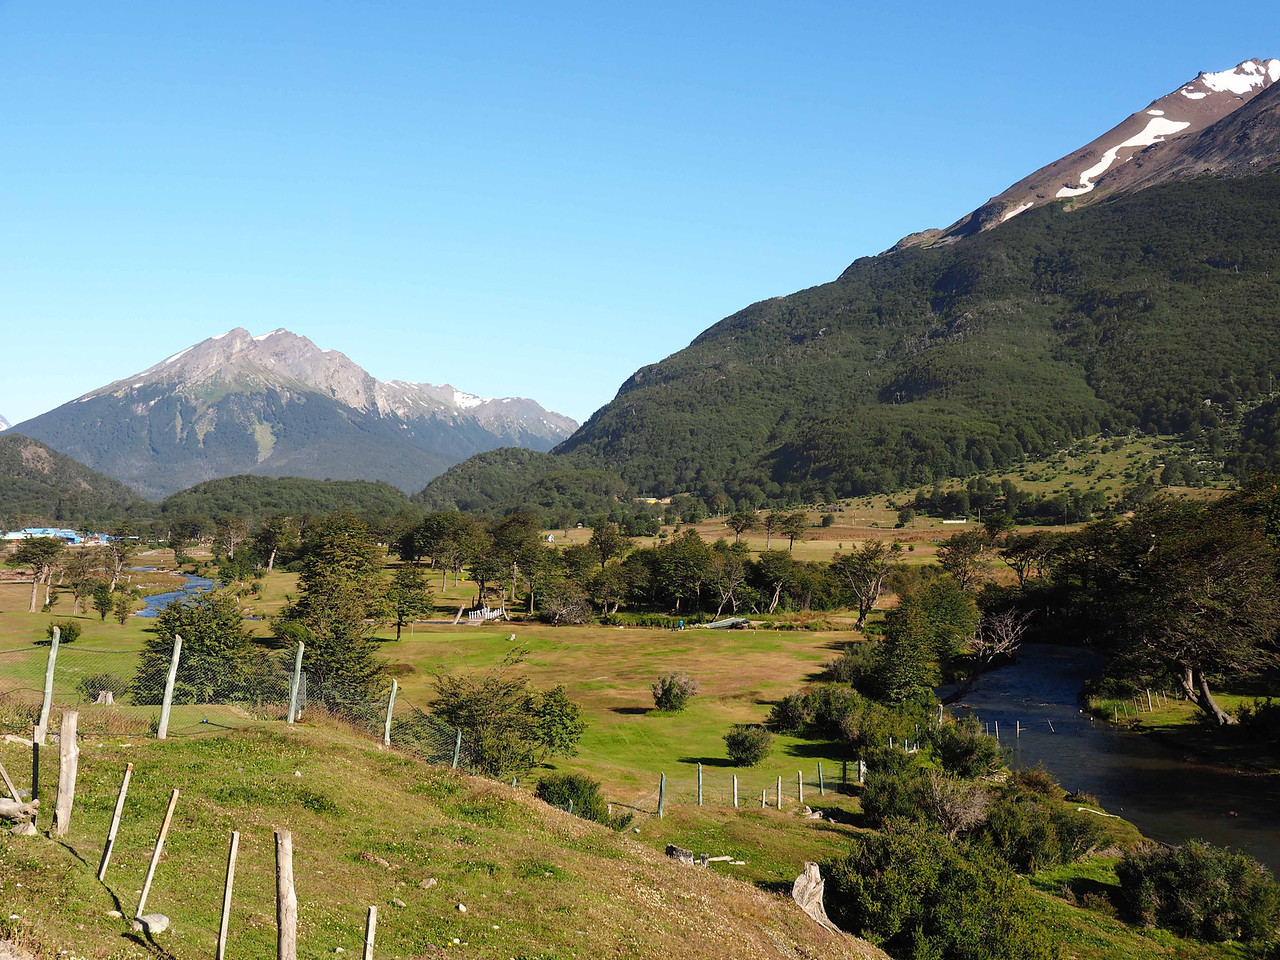 View near the entrance to Tierra del Fuego National Park